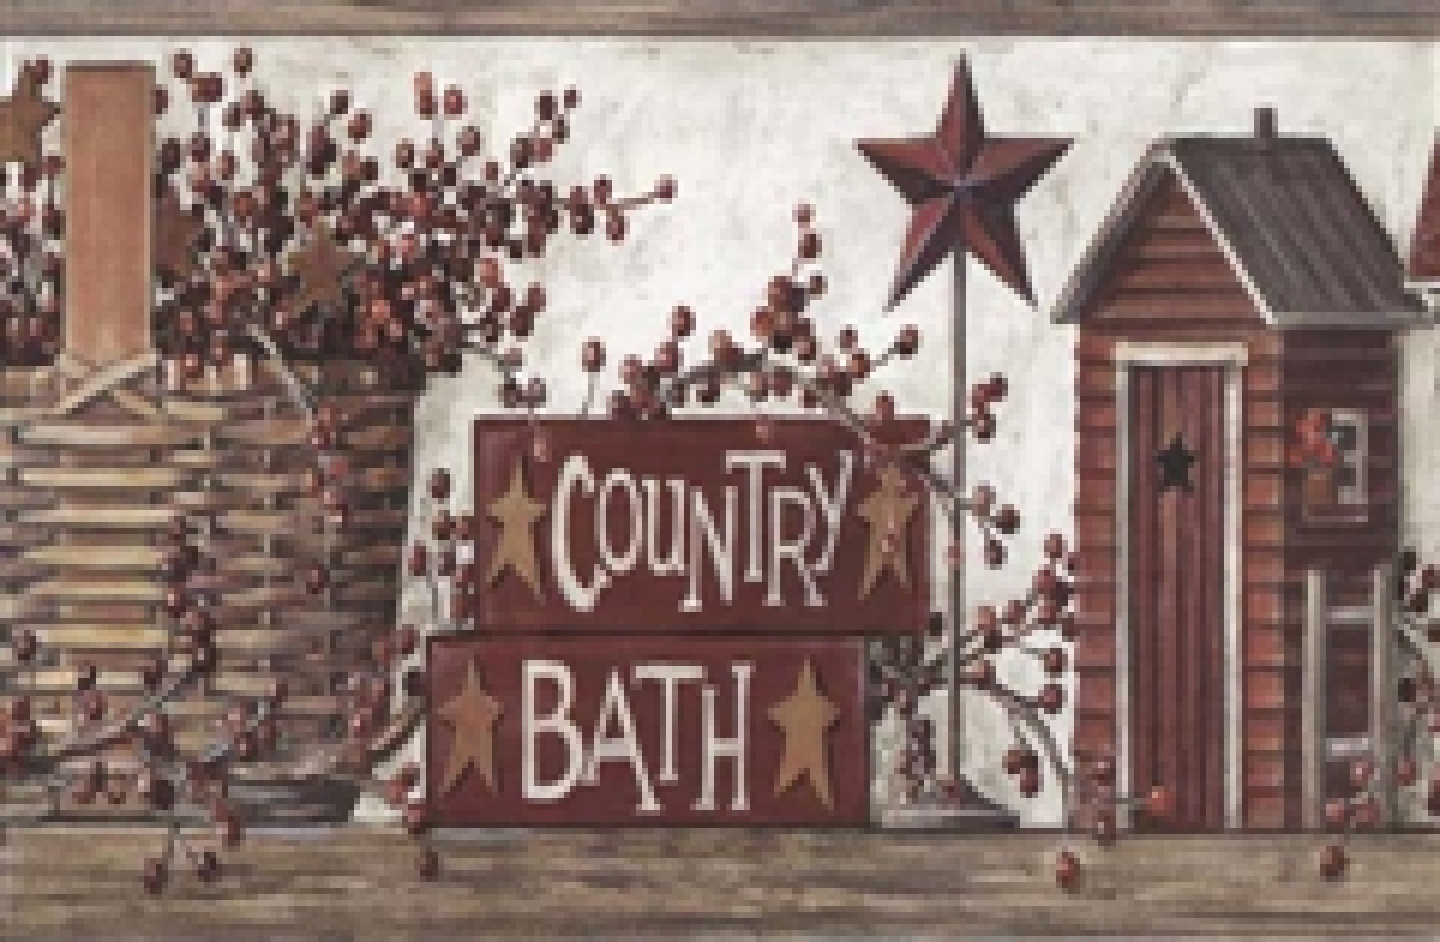 Heart ii country border kitchen and bath kitchen and bath border 1440x942